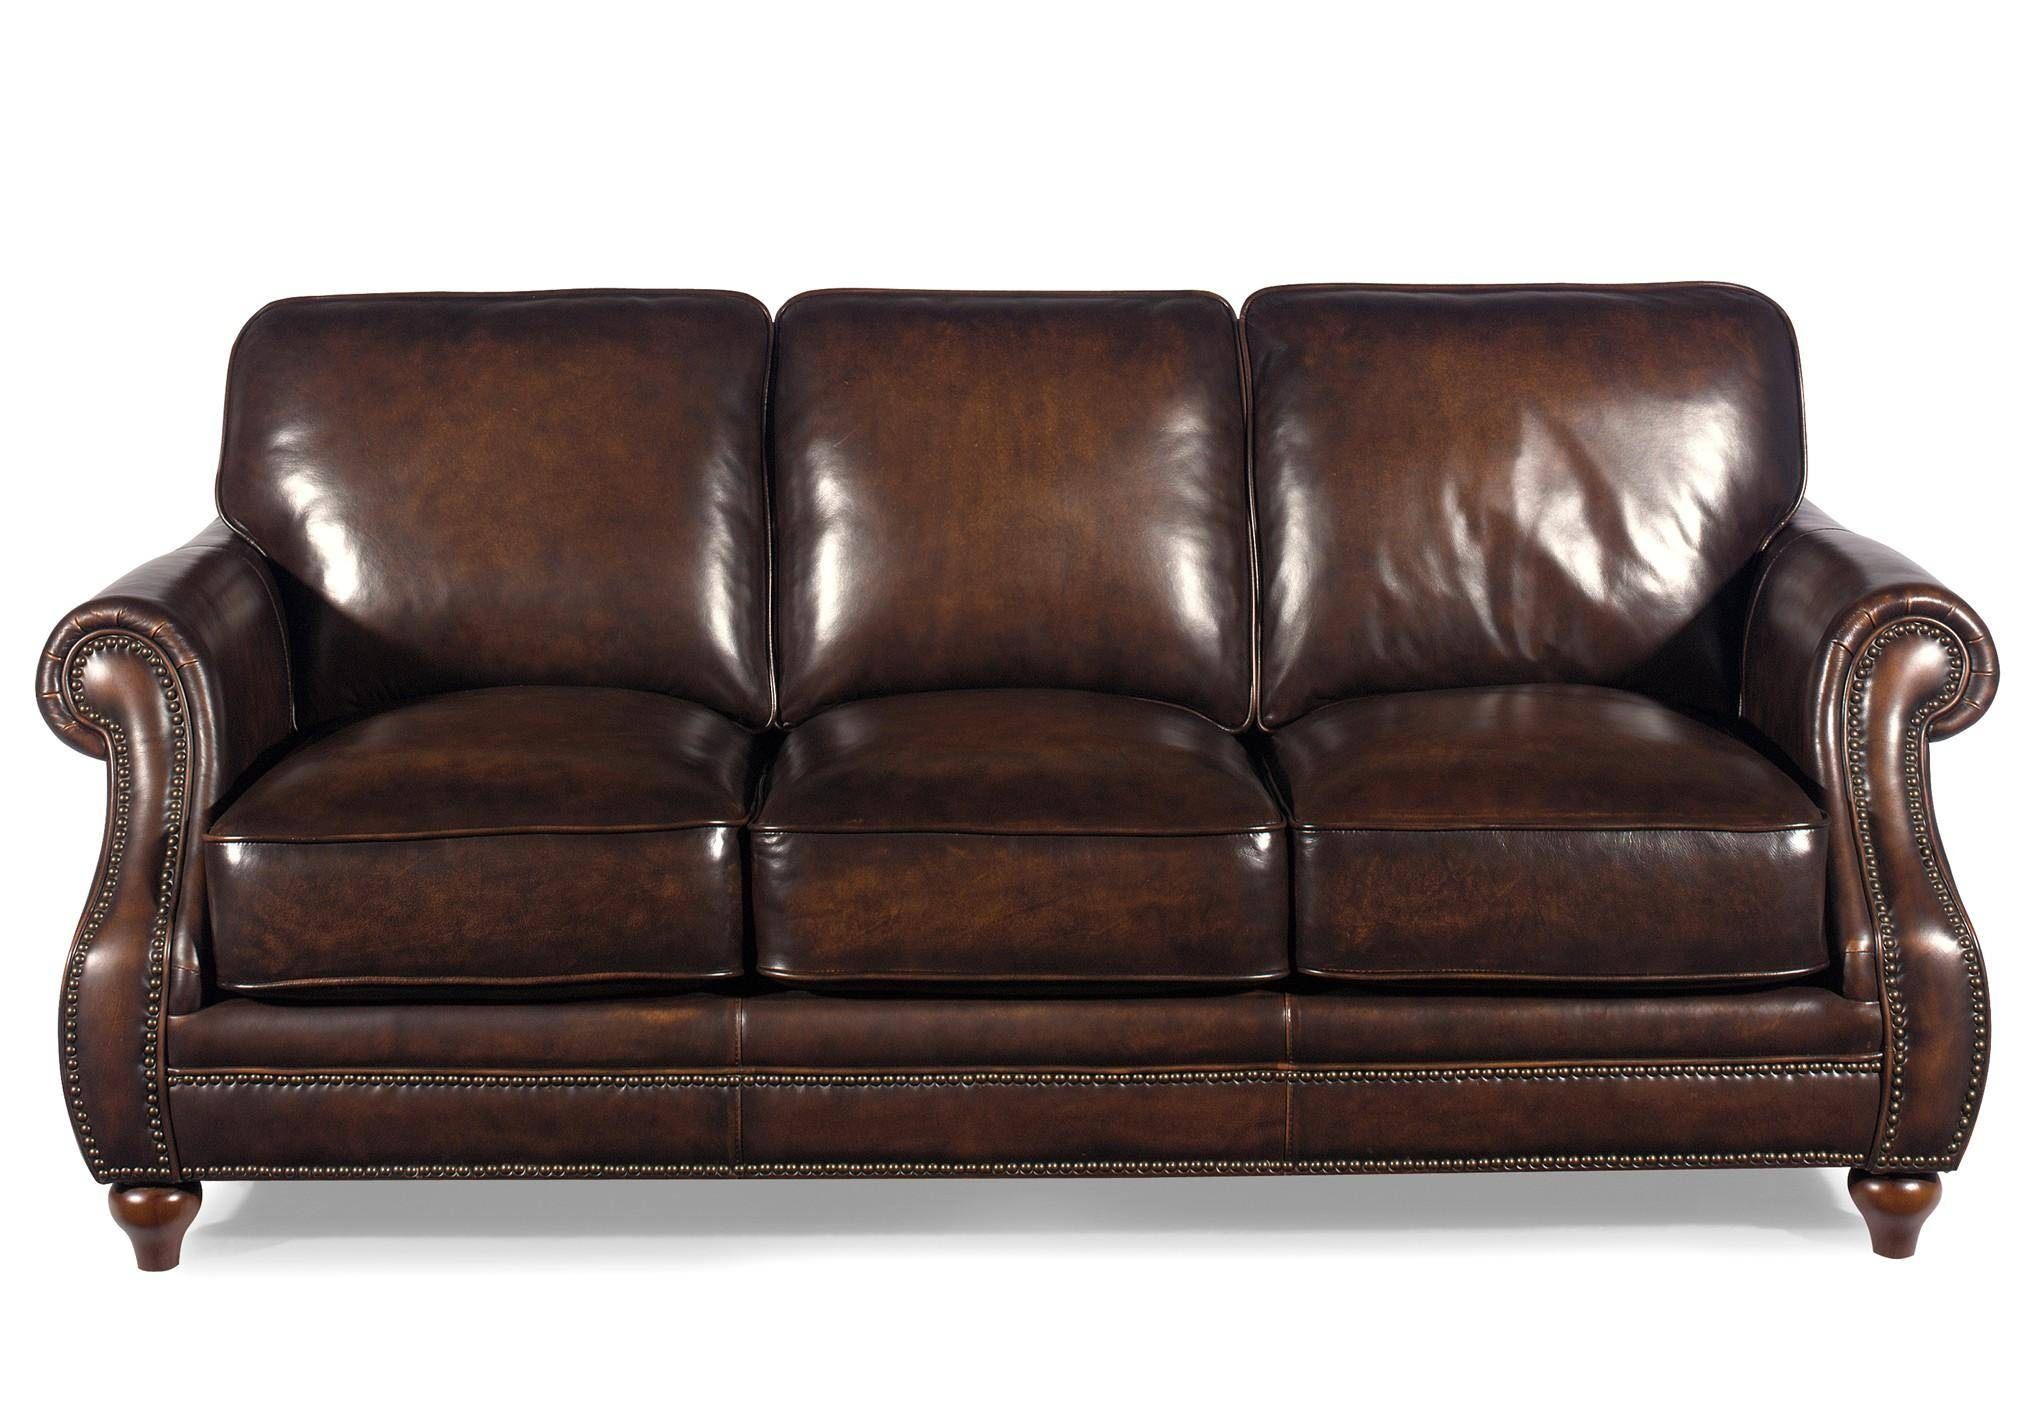 brown leather sofas brown leather sofas decorating ideas brown leather sofas for sale home. Black Bedroom Furniture Sets. Home Design Ideas